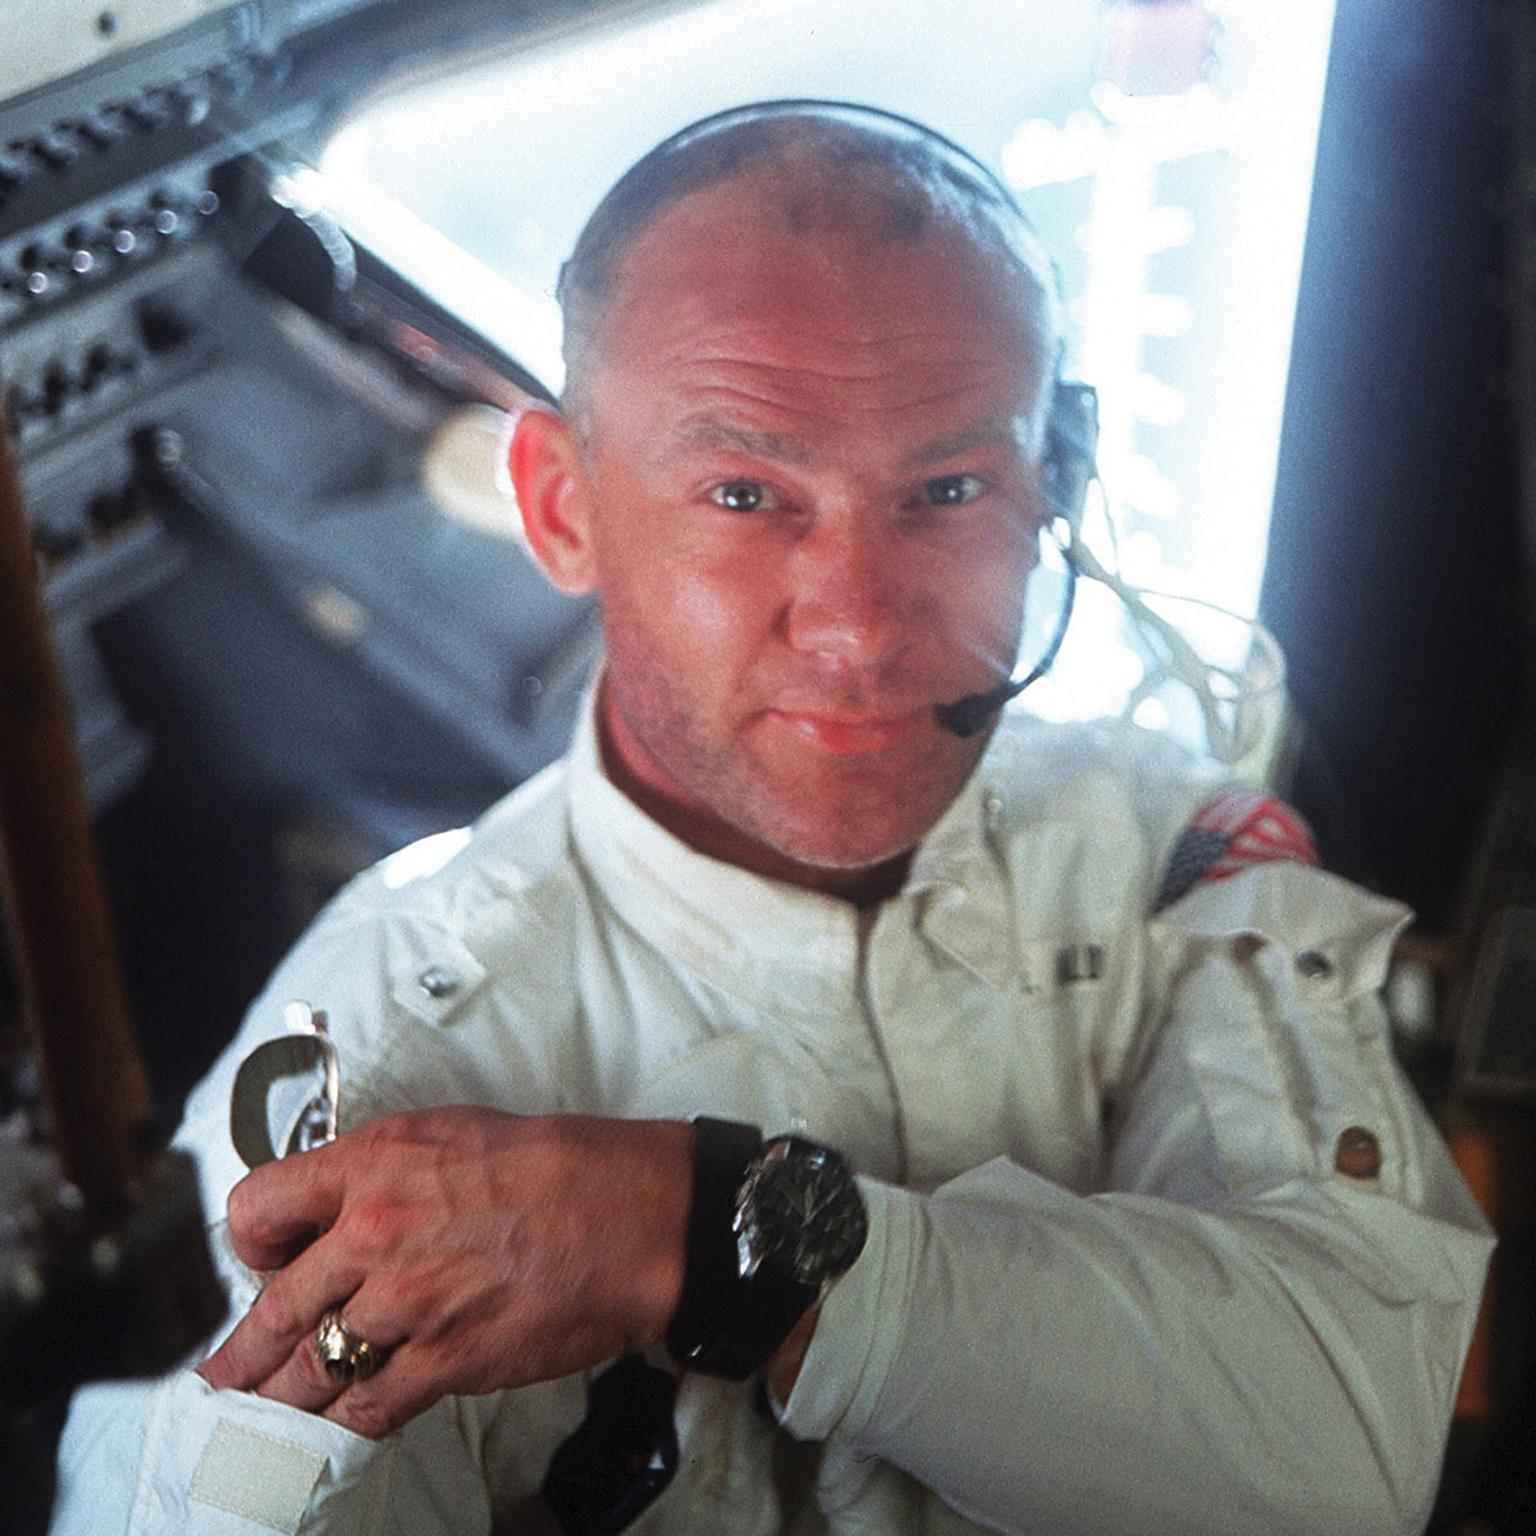 Buzz Aldrin pictured in July 1969 wearing his Omega Speedmaster watch